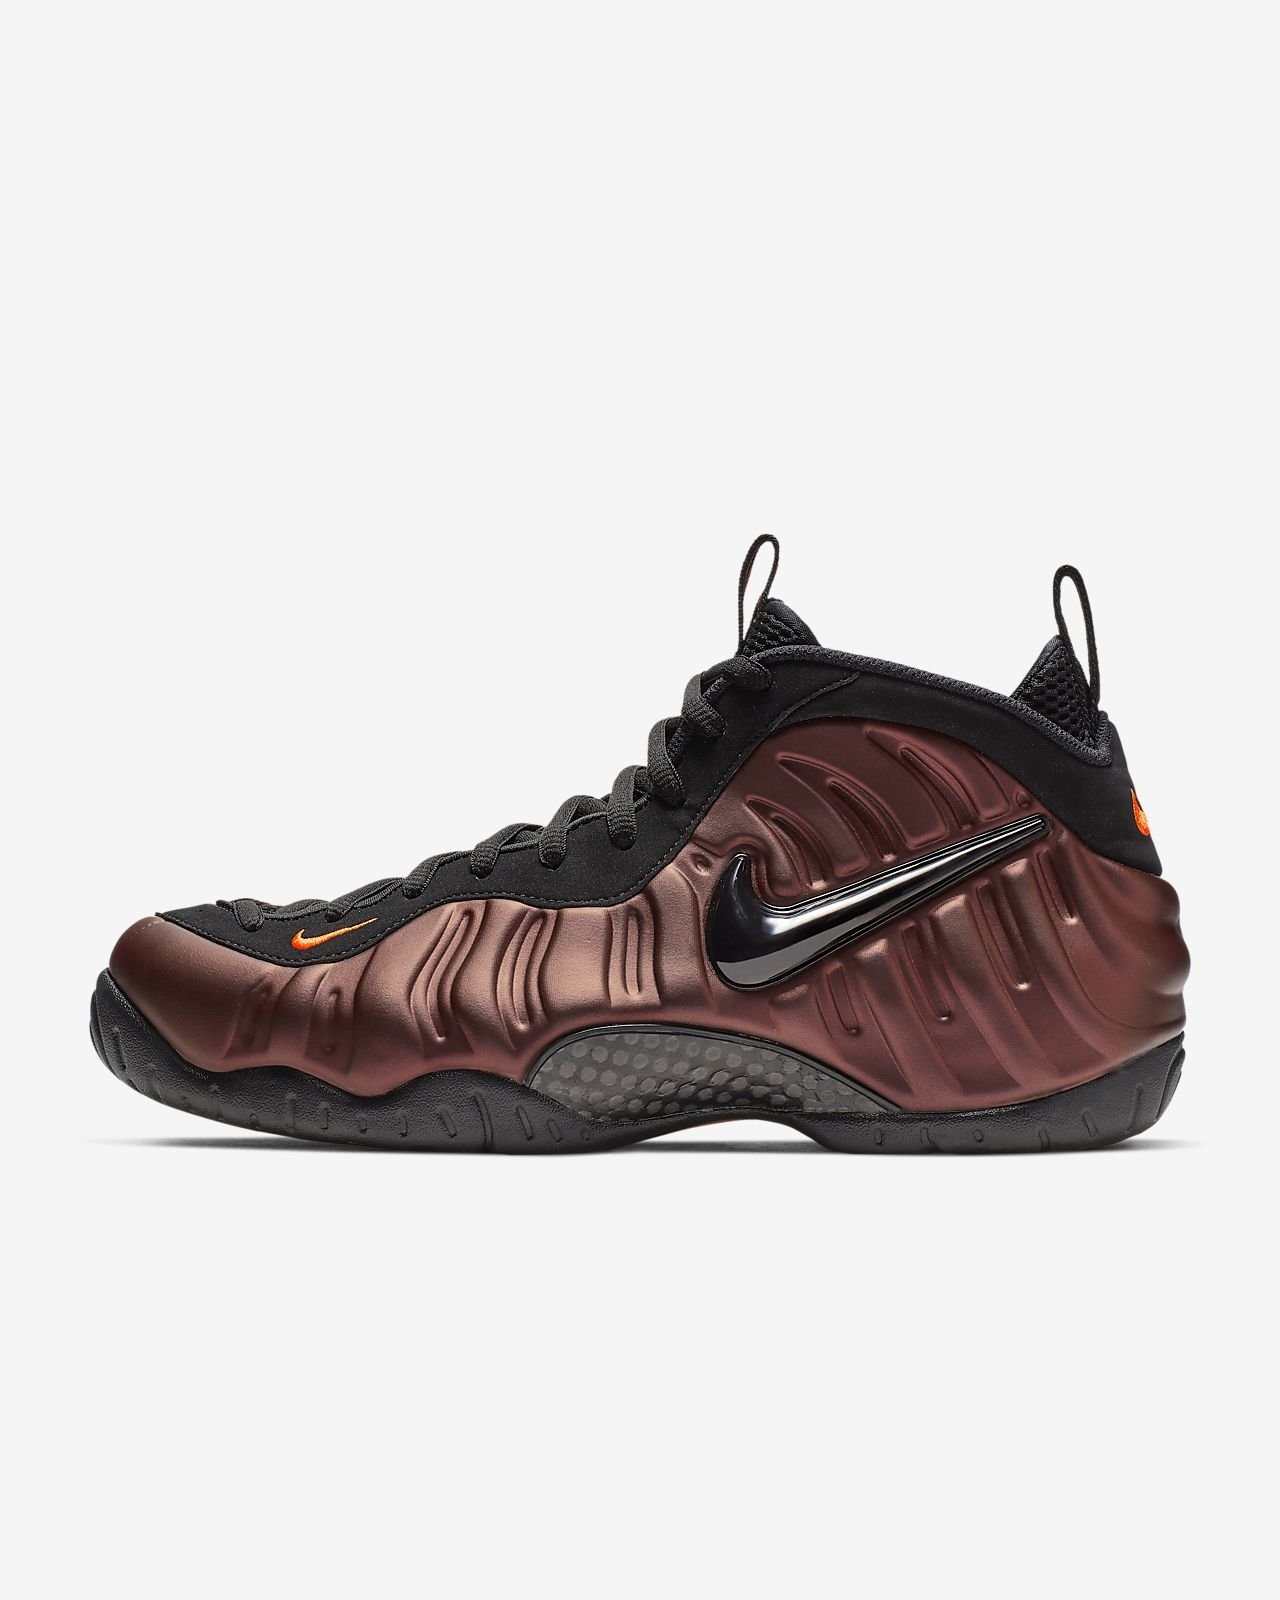 58b1c22f8dfb3 Nike Air Foamposite Pro Men s Shoe. Nike.com ID